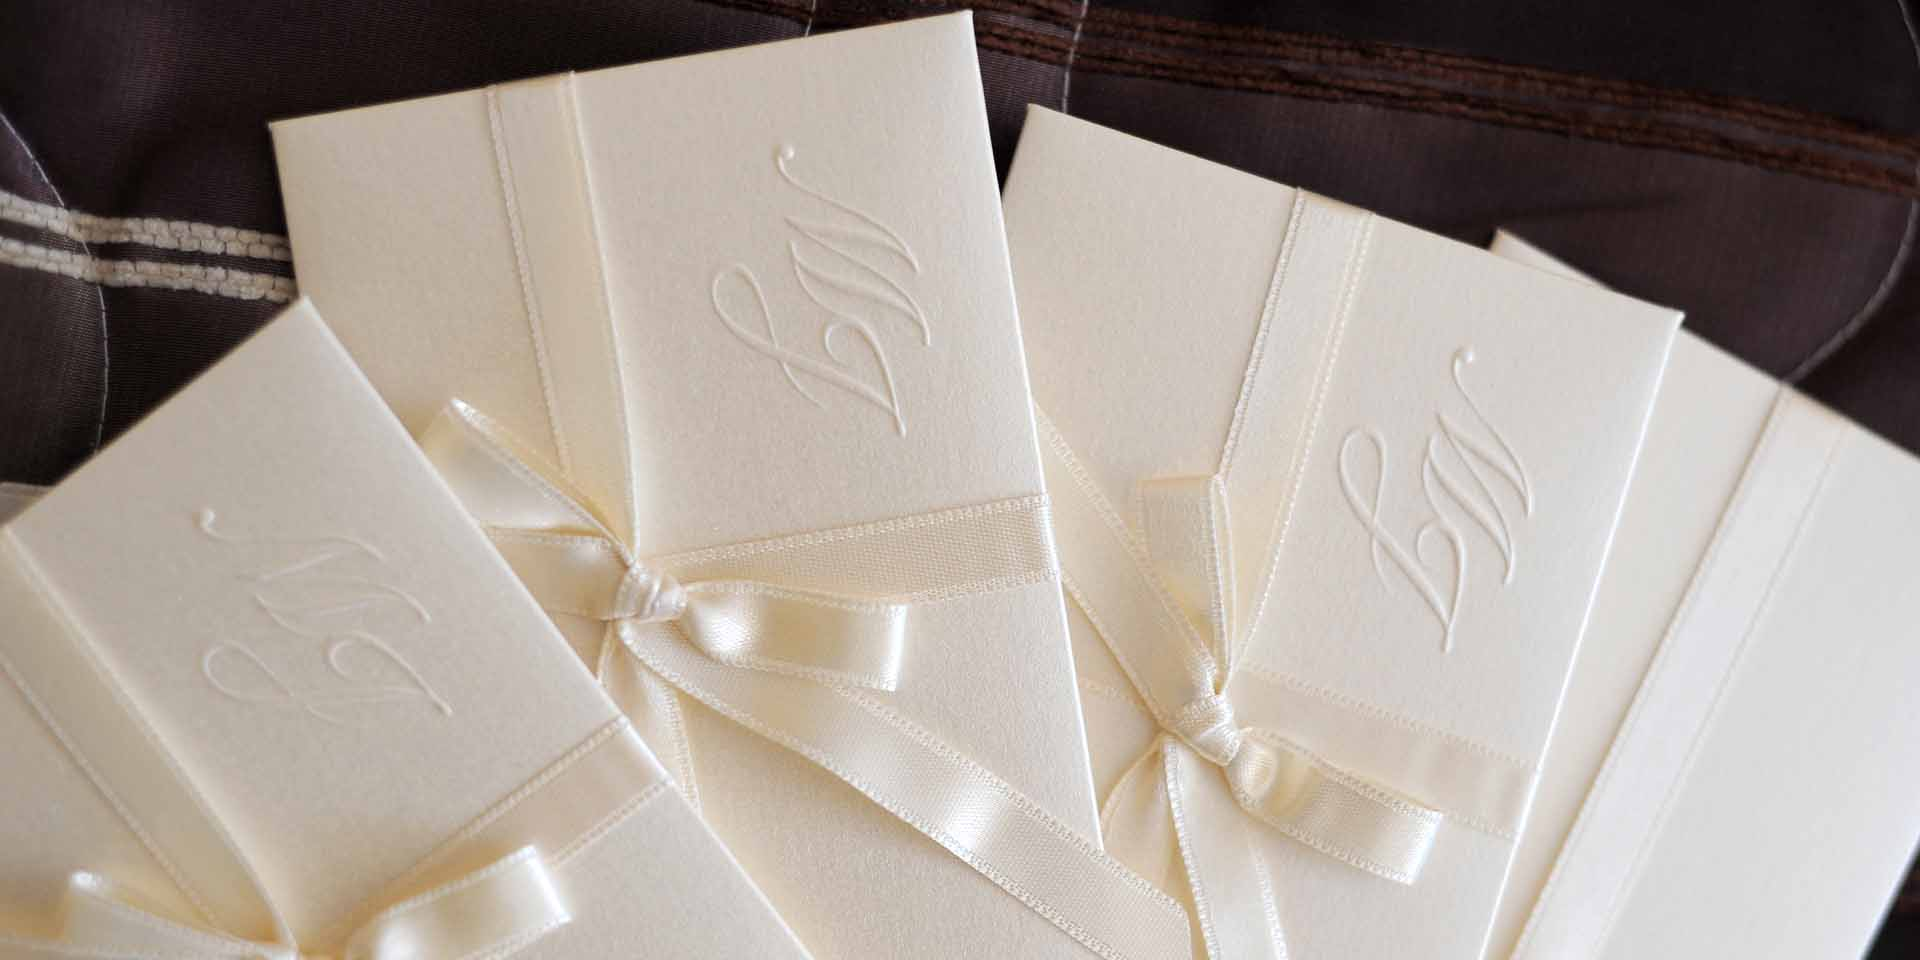 choosing wedding stationery